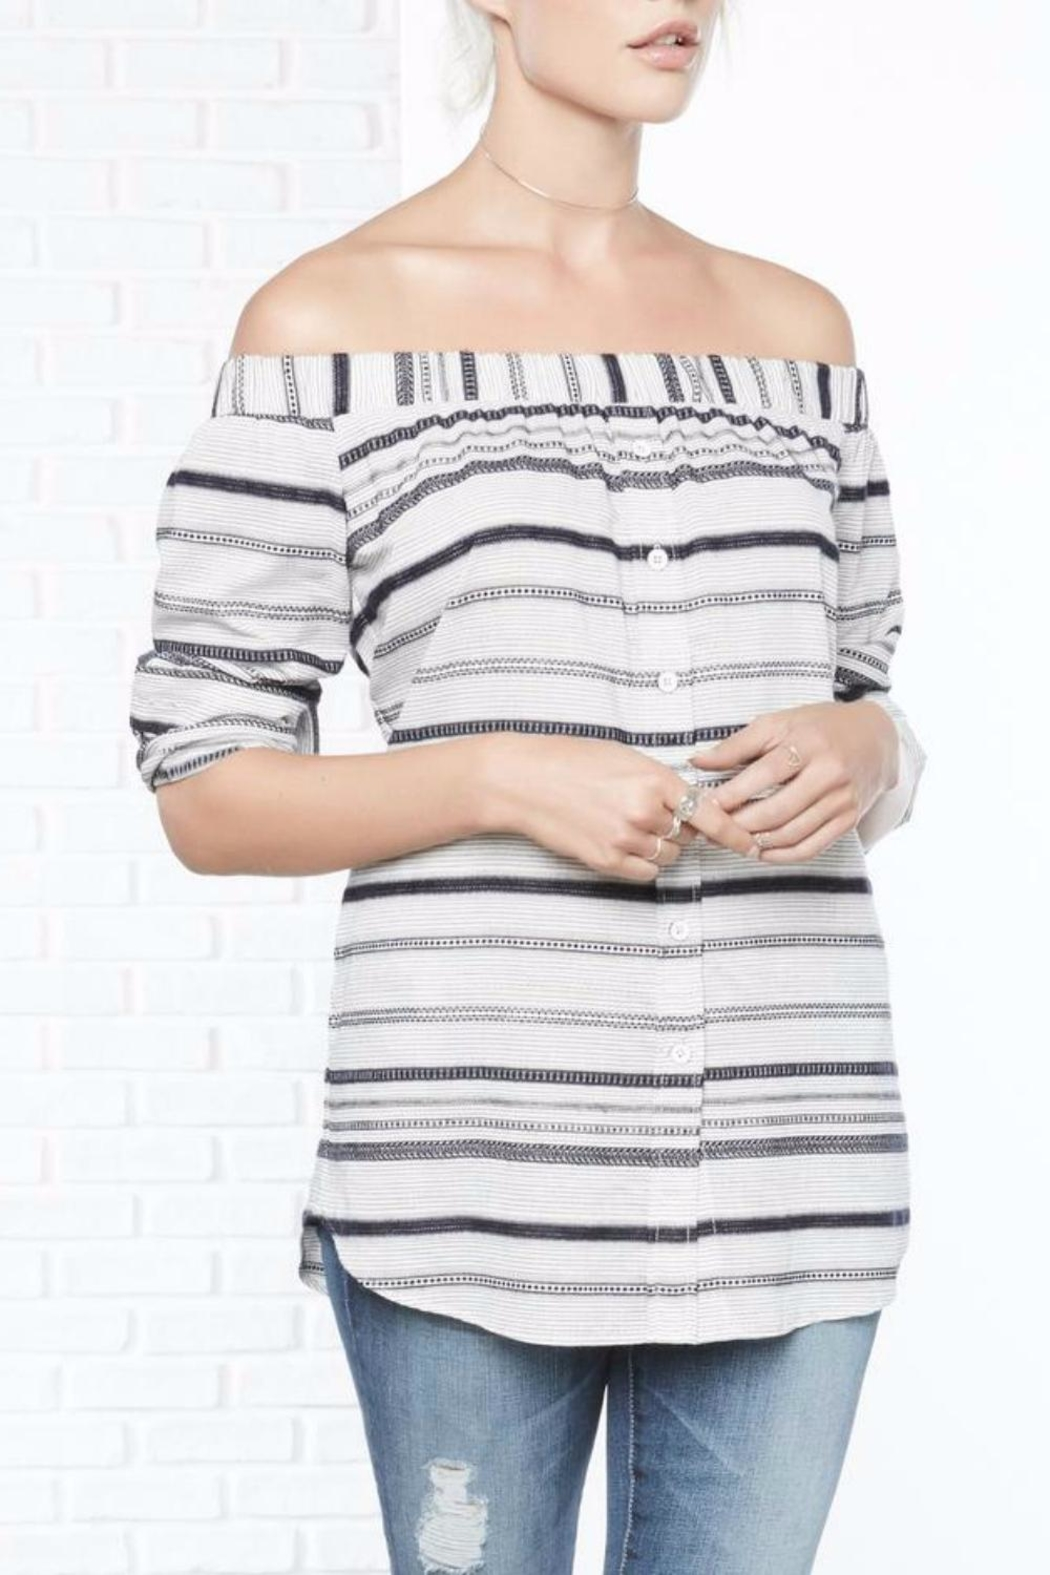 ce536c84a0 Fifteen Twenty Off Shoulder Top from Westhampton Beach by Chic ...